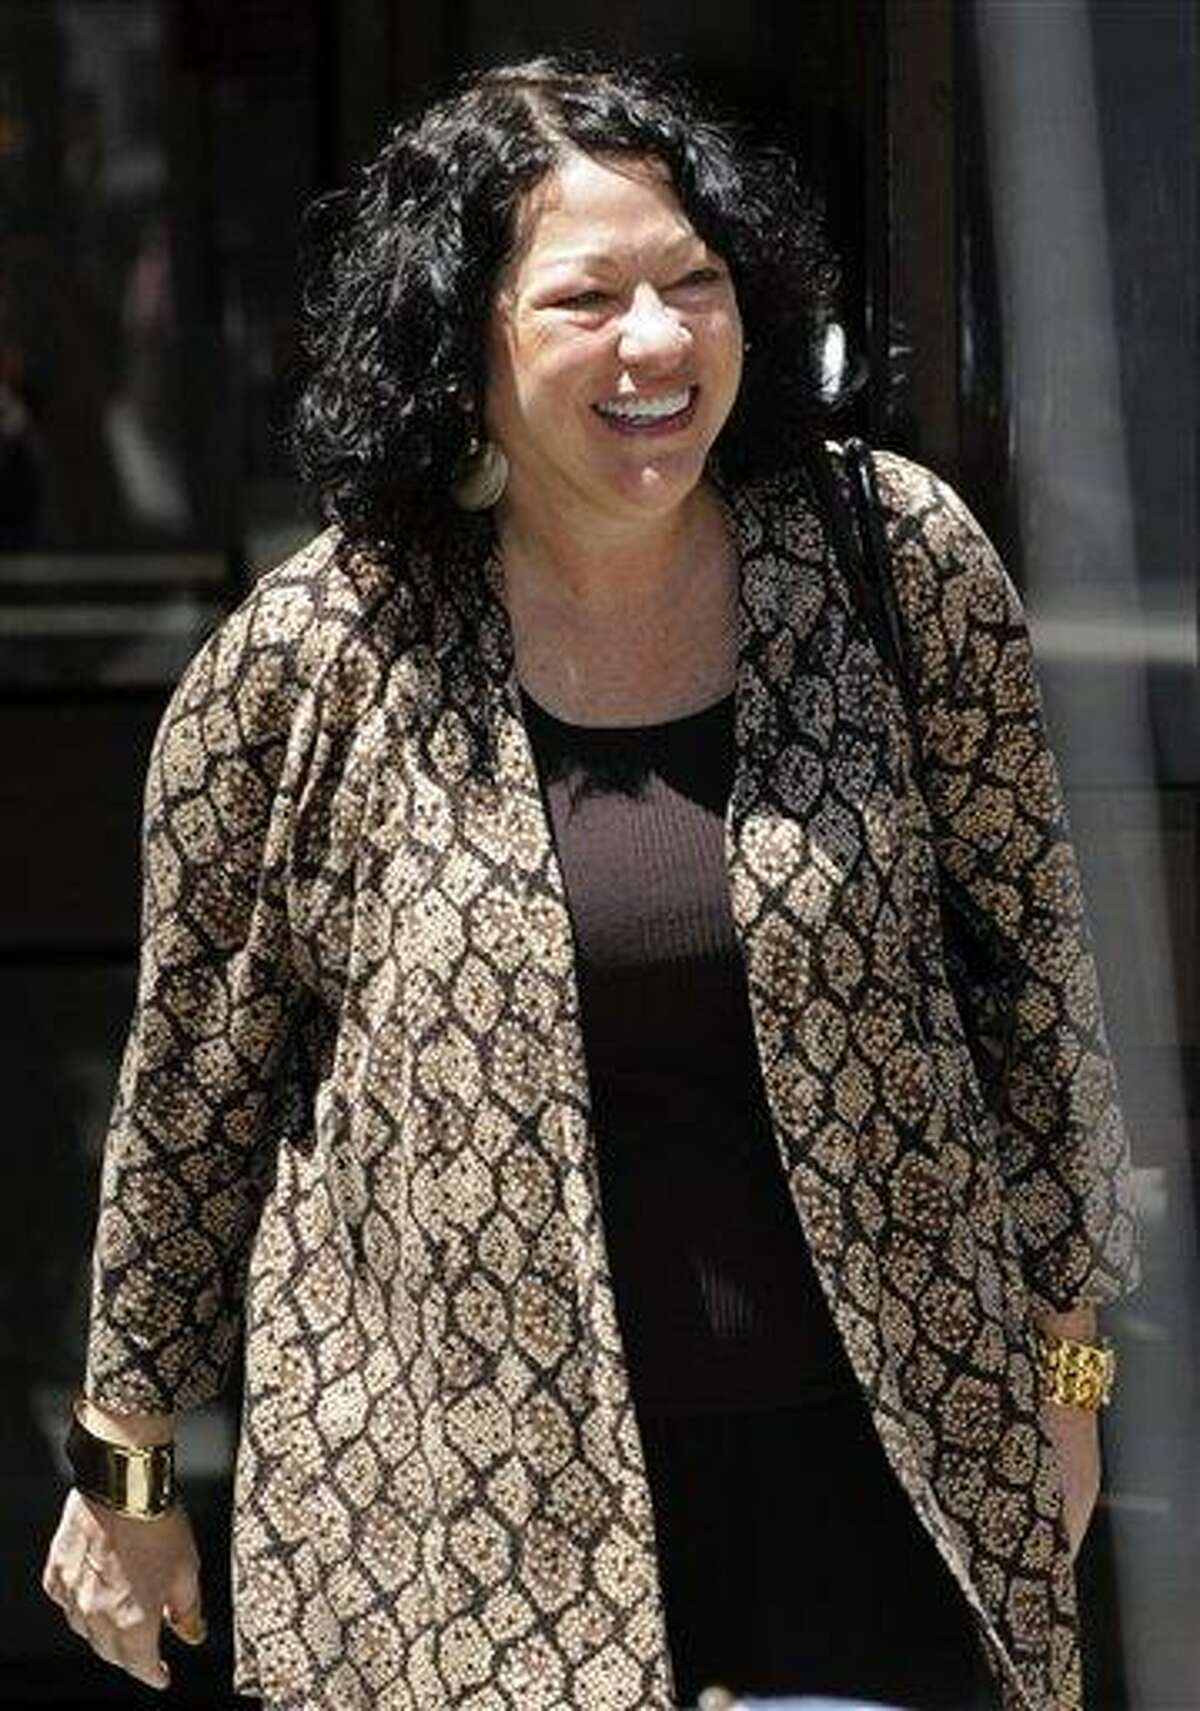 FILE - In this Aug. 7, 2009 file photo, Supreme Court designate Sonia Sotomayor leaves her West Village apartment in New York. (AP Photo/ Louis Lanzano, FILE)